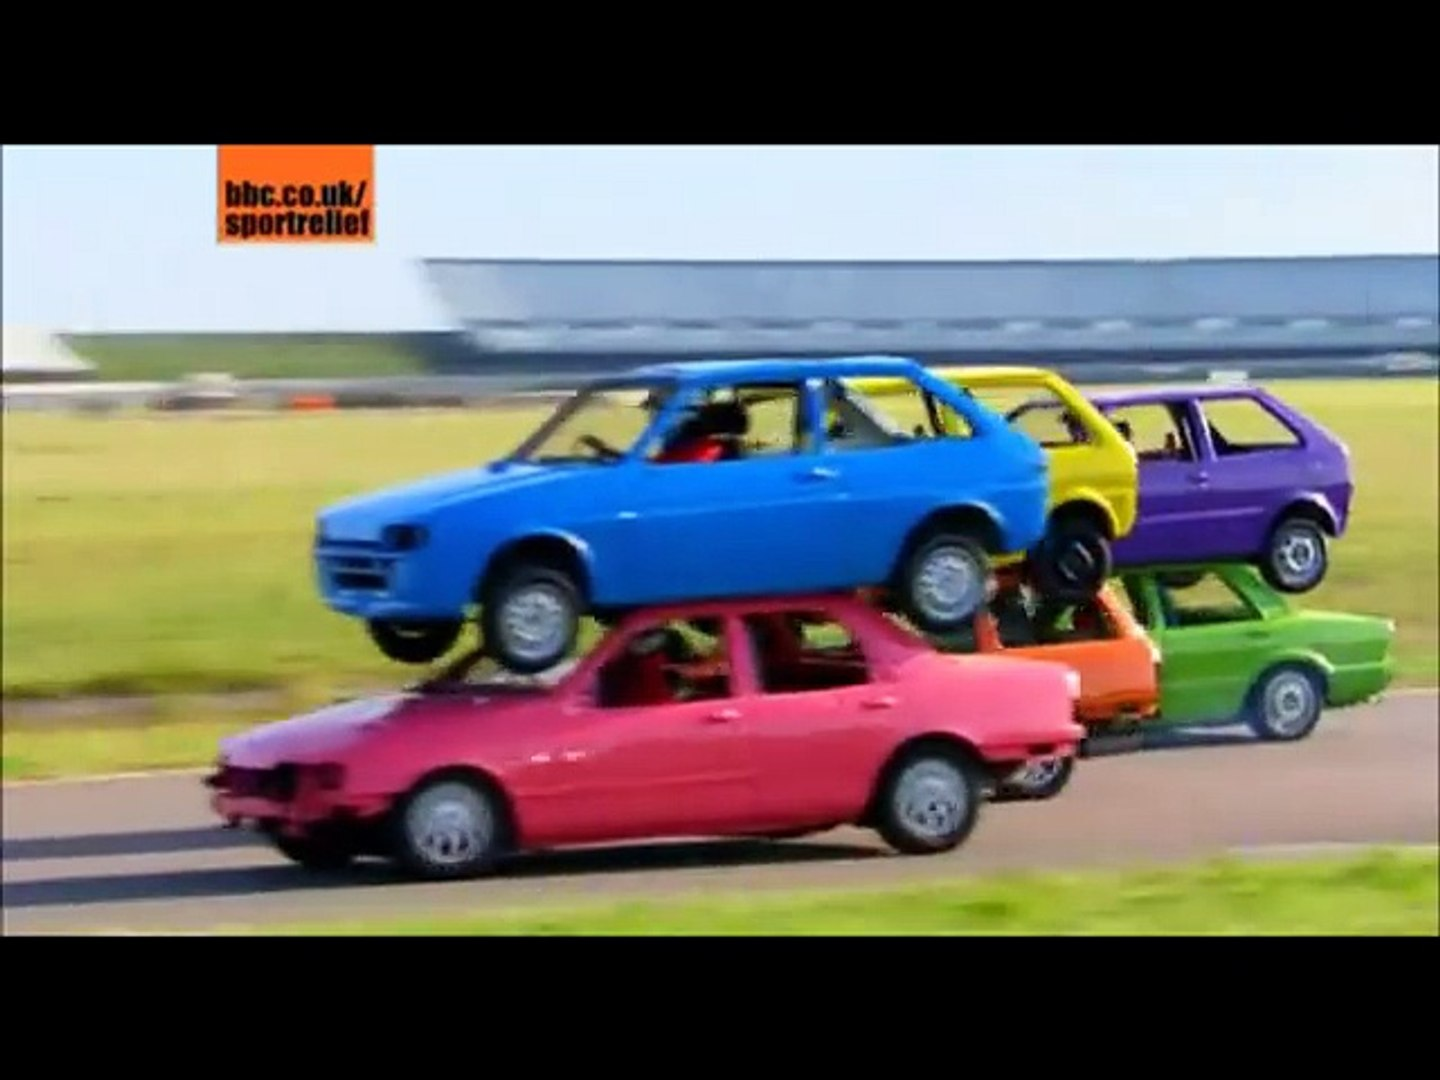 Top Gear - Stars In Fast Cars - Sports Relief (2005)